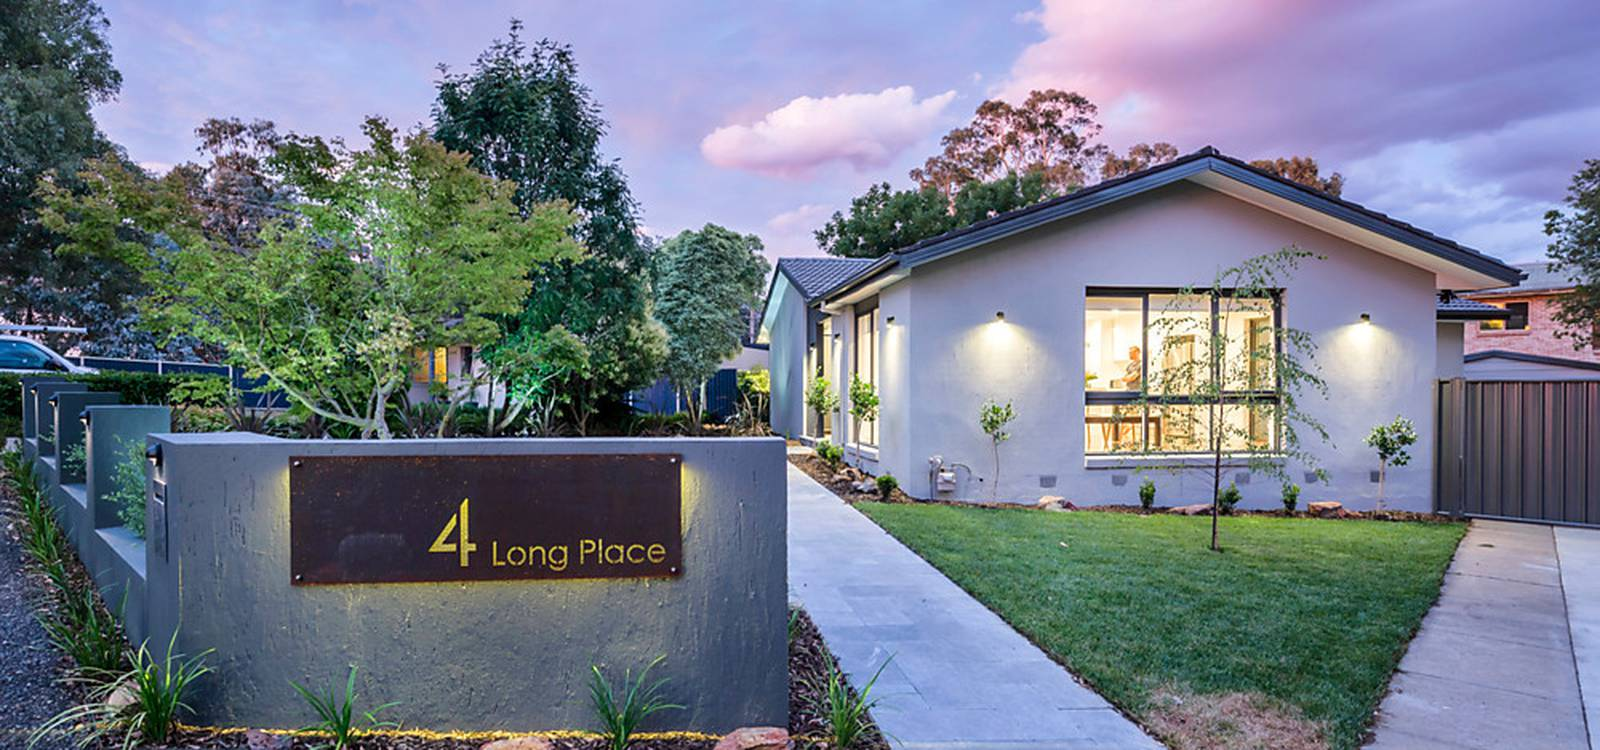 4 Long Place SCULLIN, ACT 2614 - photo 1